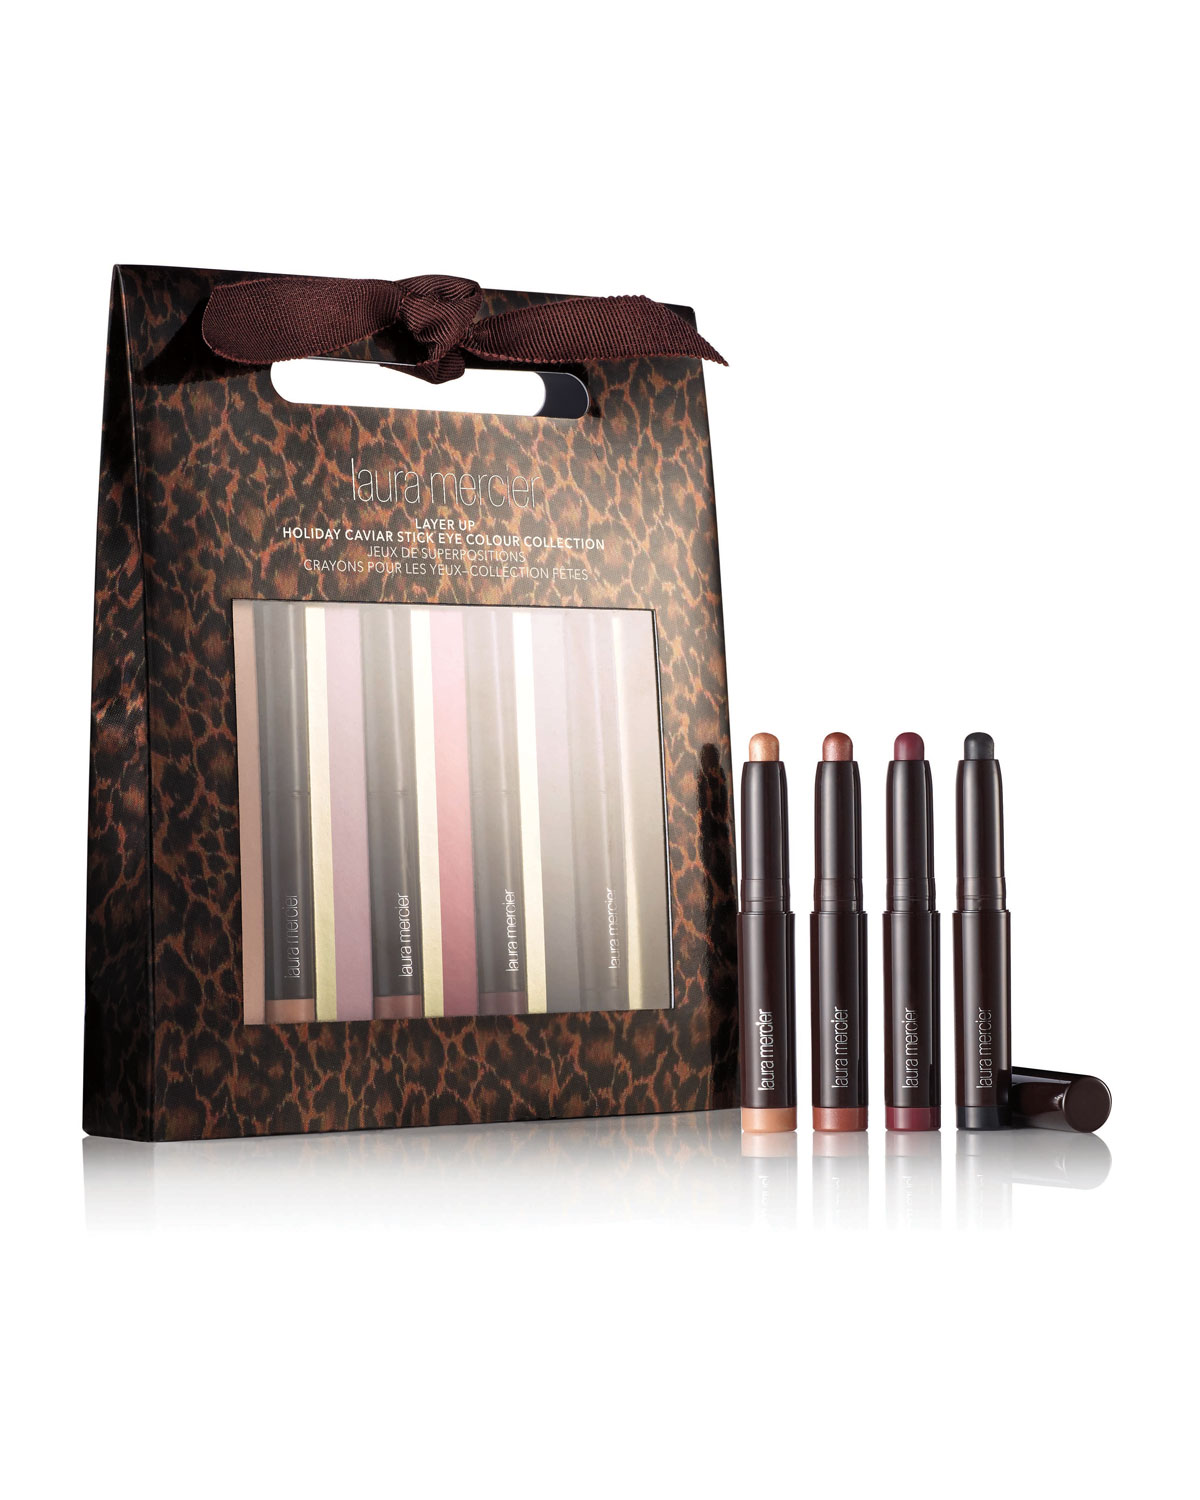 Limited Edition Layer Up Holiday Caviar Stick Eye Colour Collection ($67 Value)